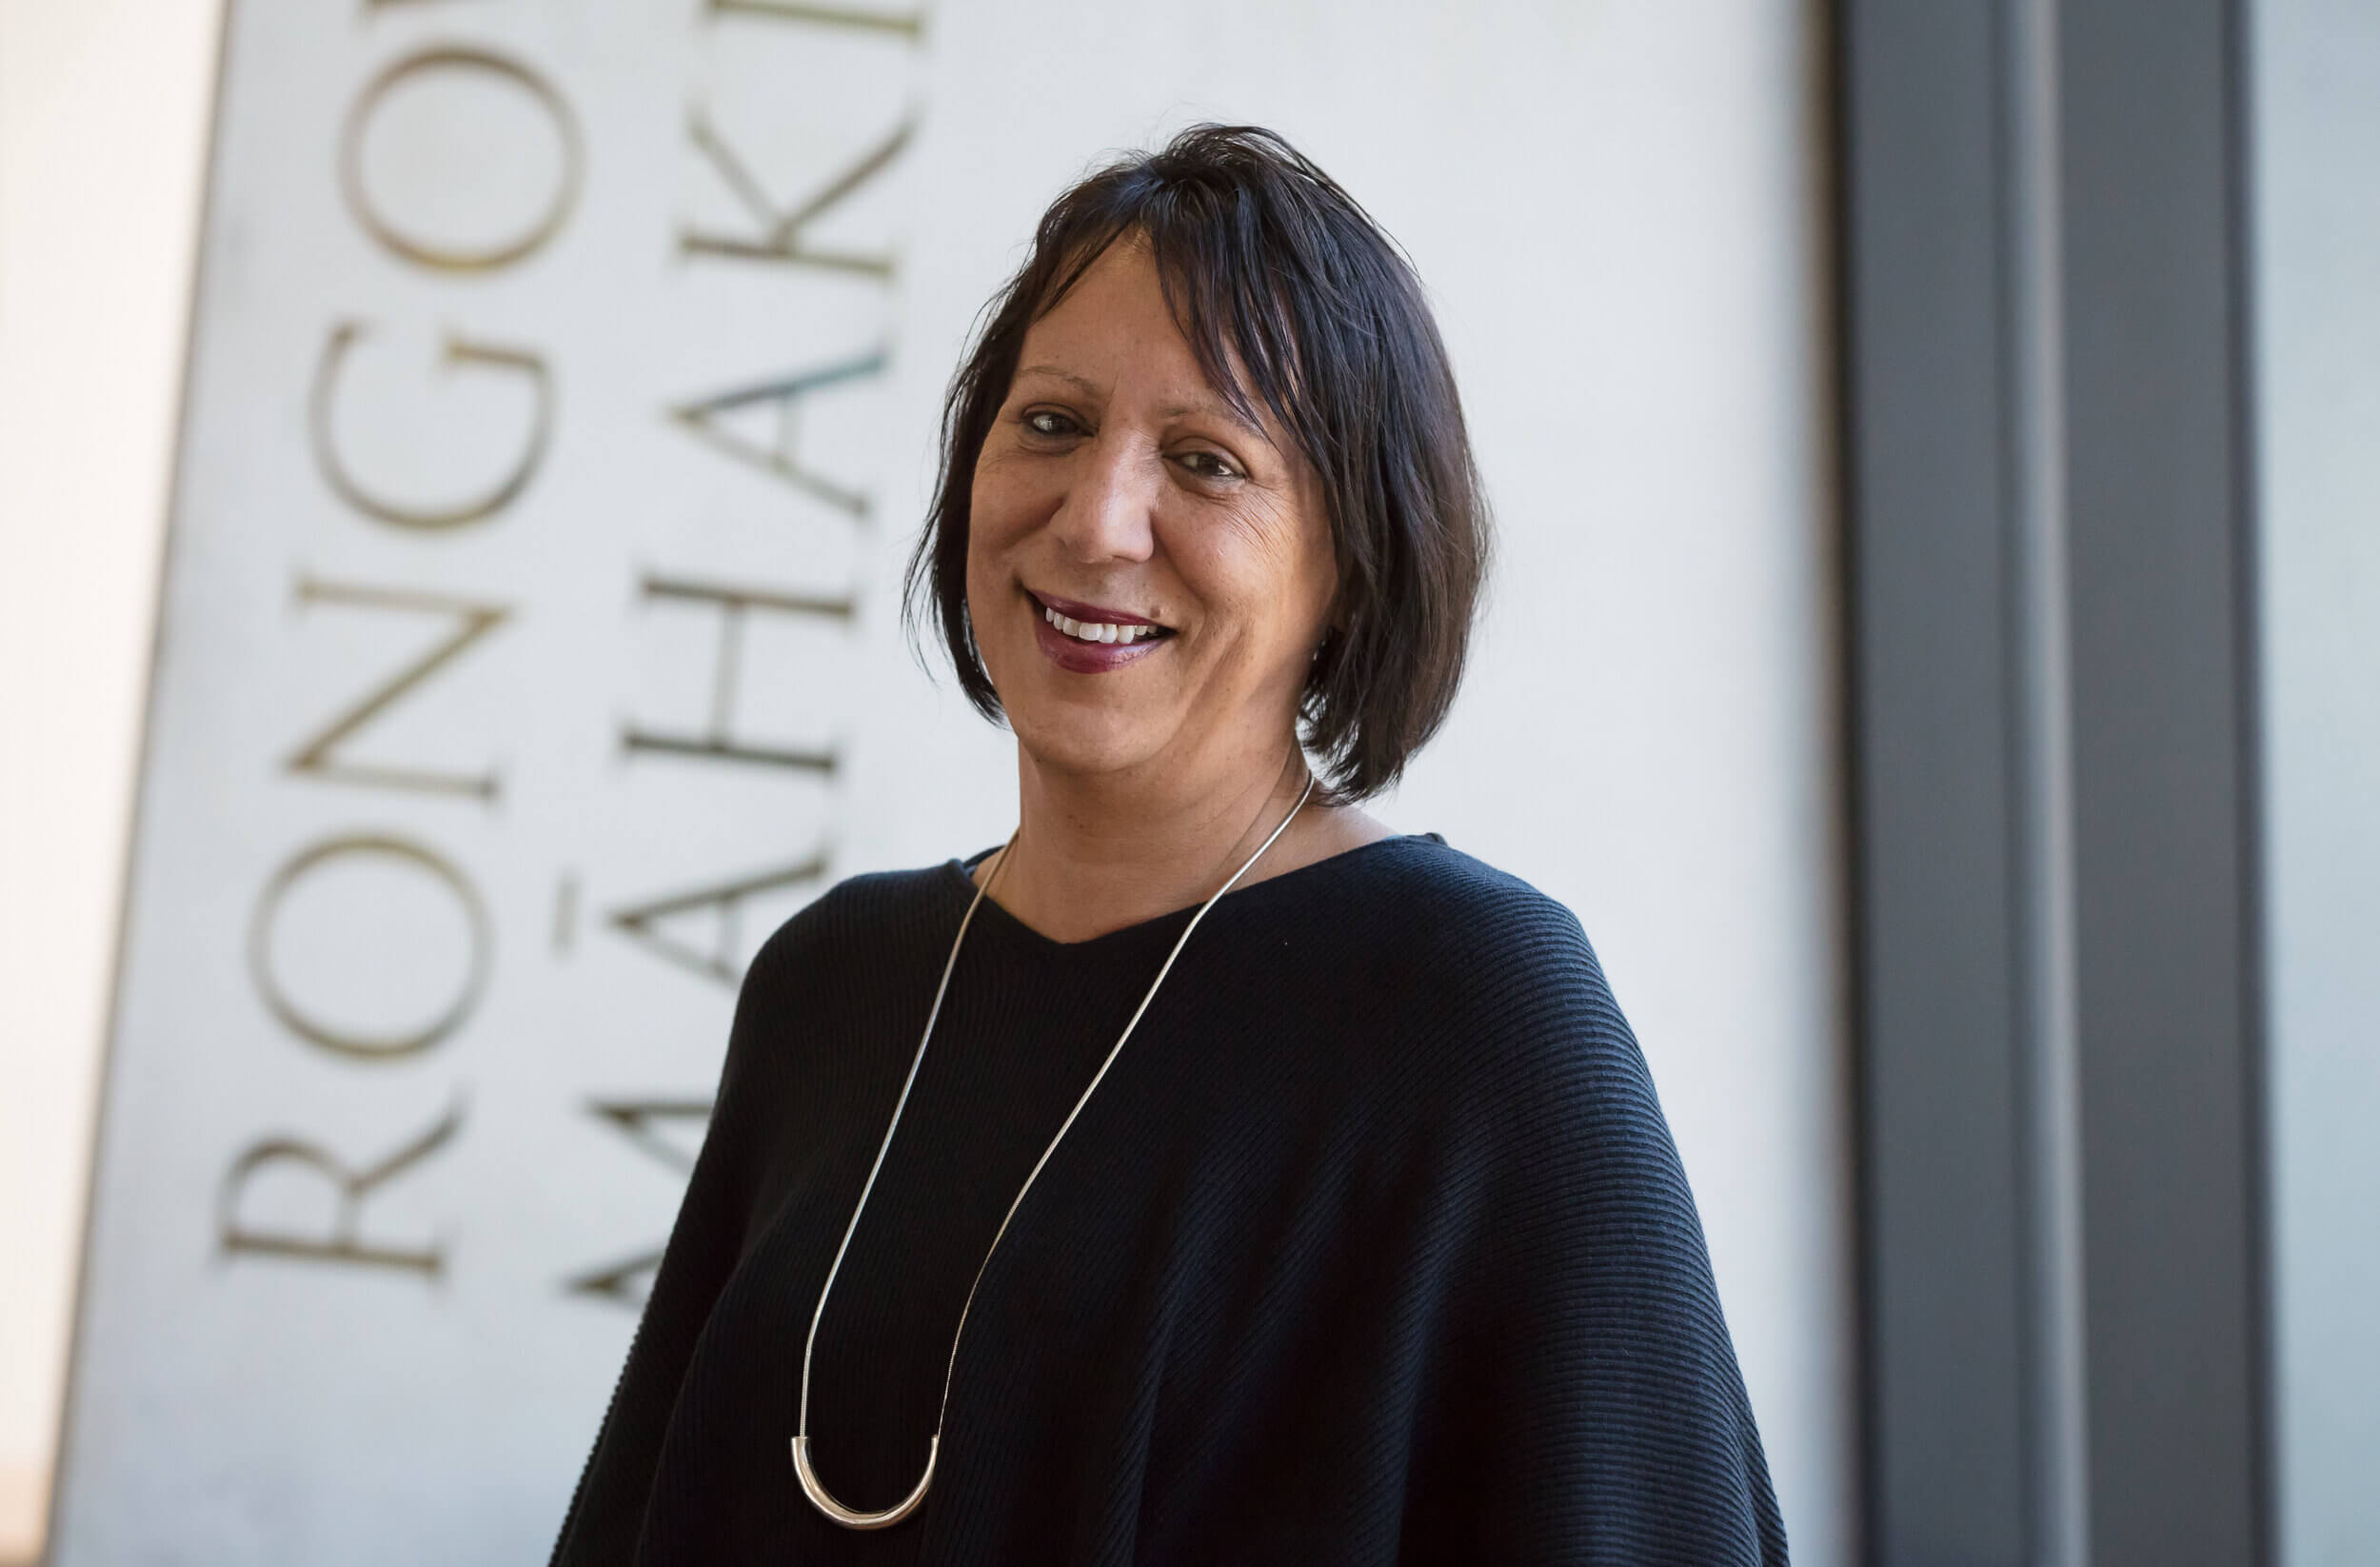 Evie O'Brien Appointed as permanent executive director of the atlantic institute